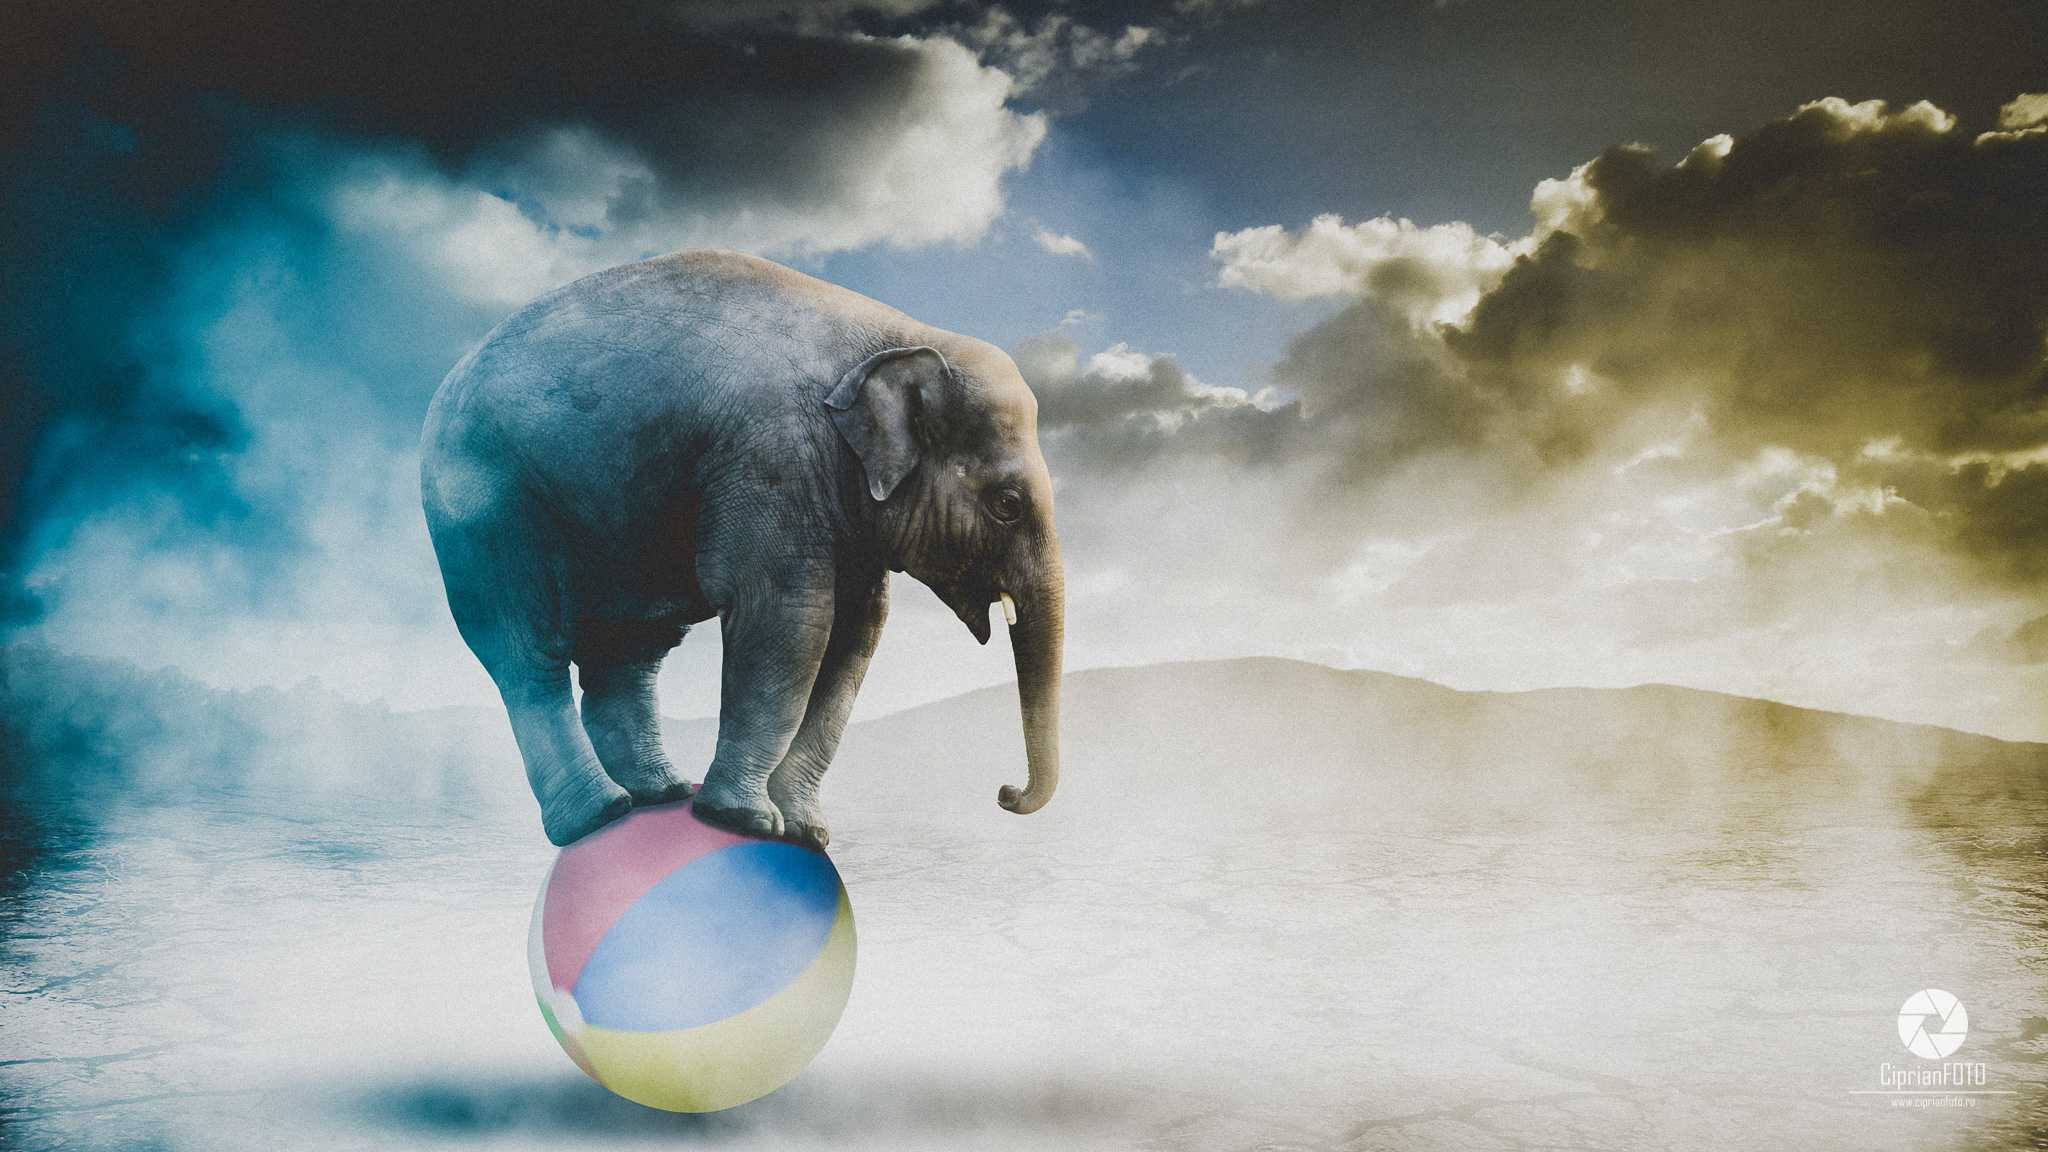 Elephant Playing With The Ball, Photoshop Manipulation Tutorial, CiprianFOTO